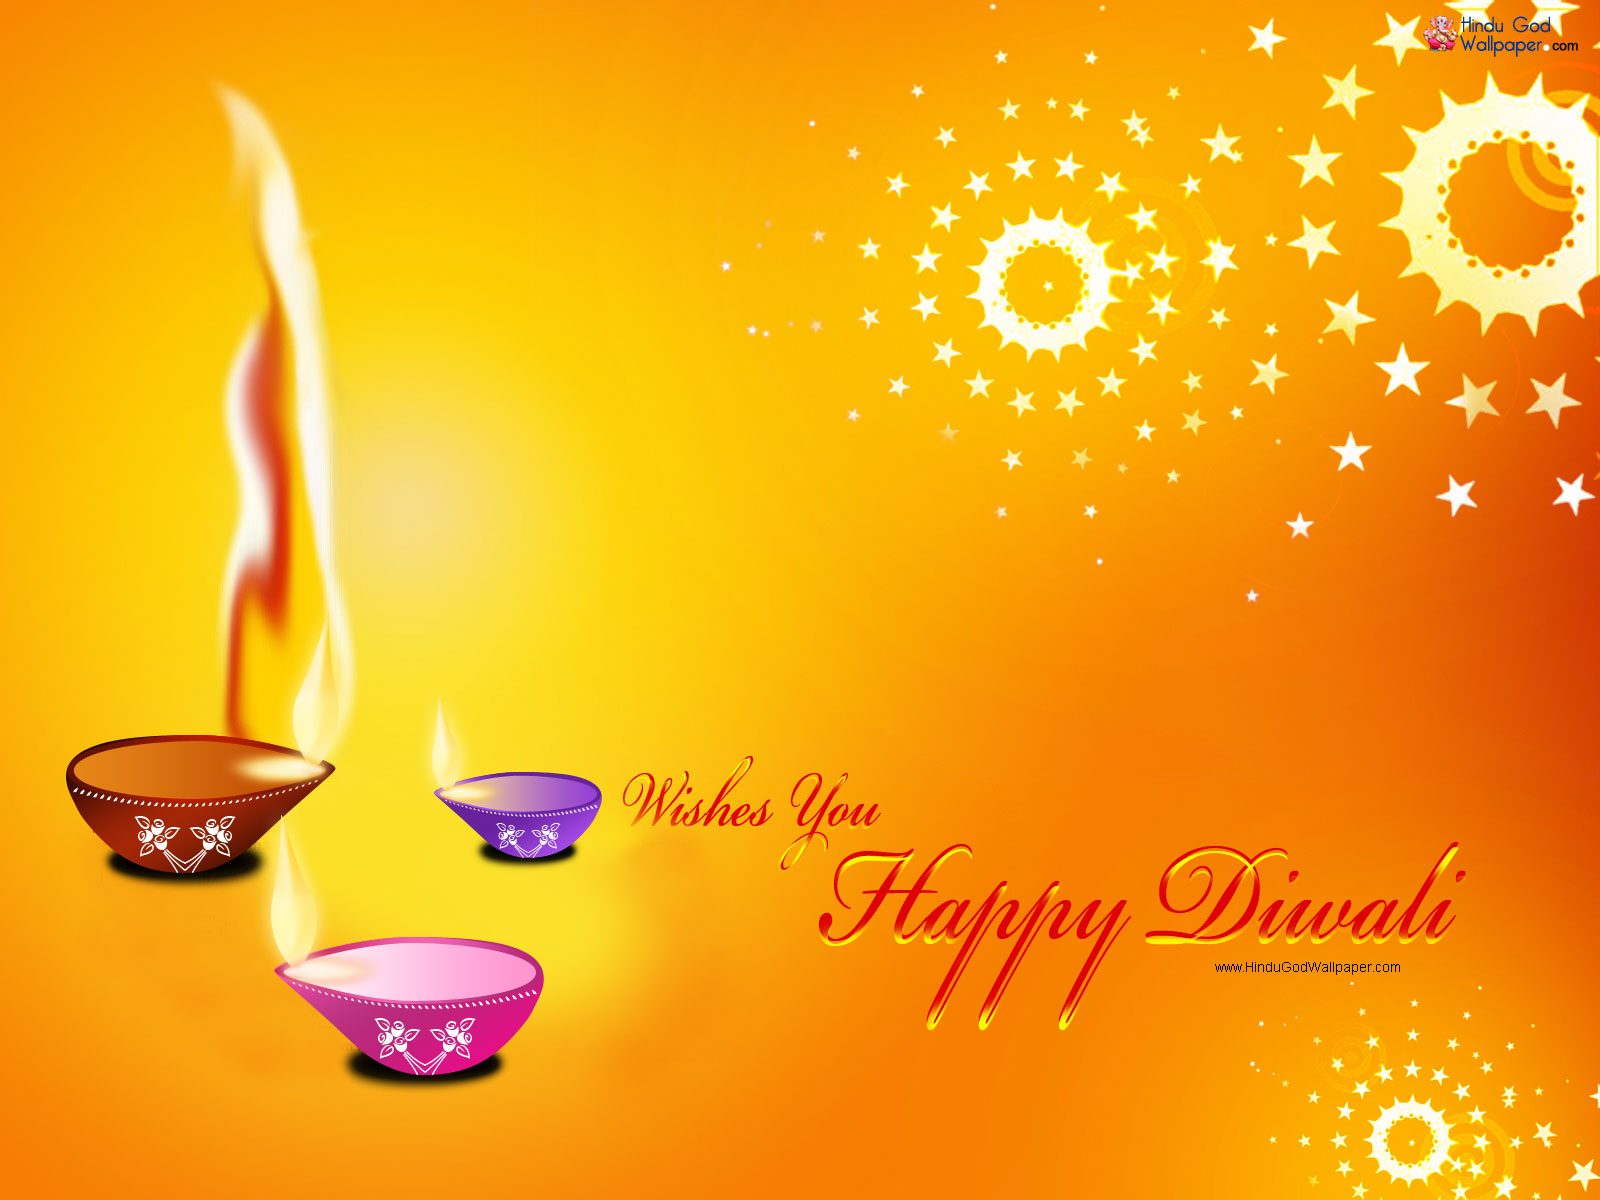 diwali essay in english diwali special short essay about diwali  diwali essay english children happy diwali poster drawing diwali drwaing poster happy diwali poster drawing diwali